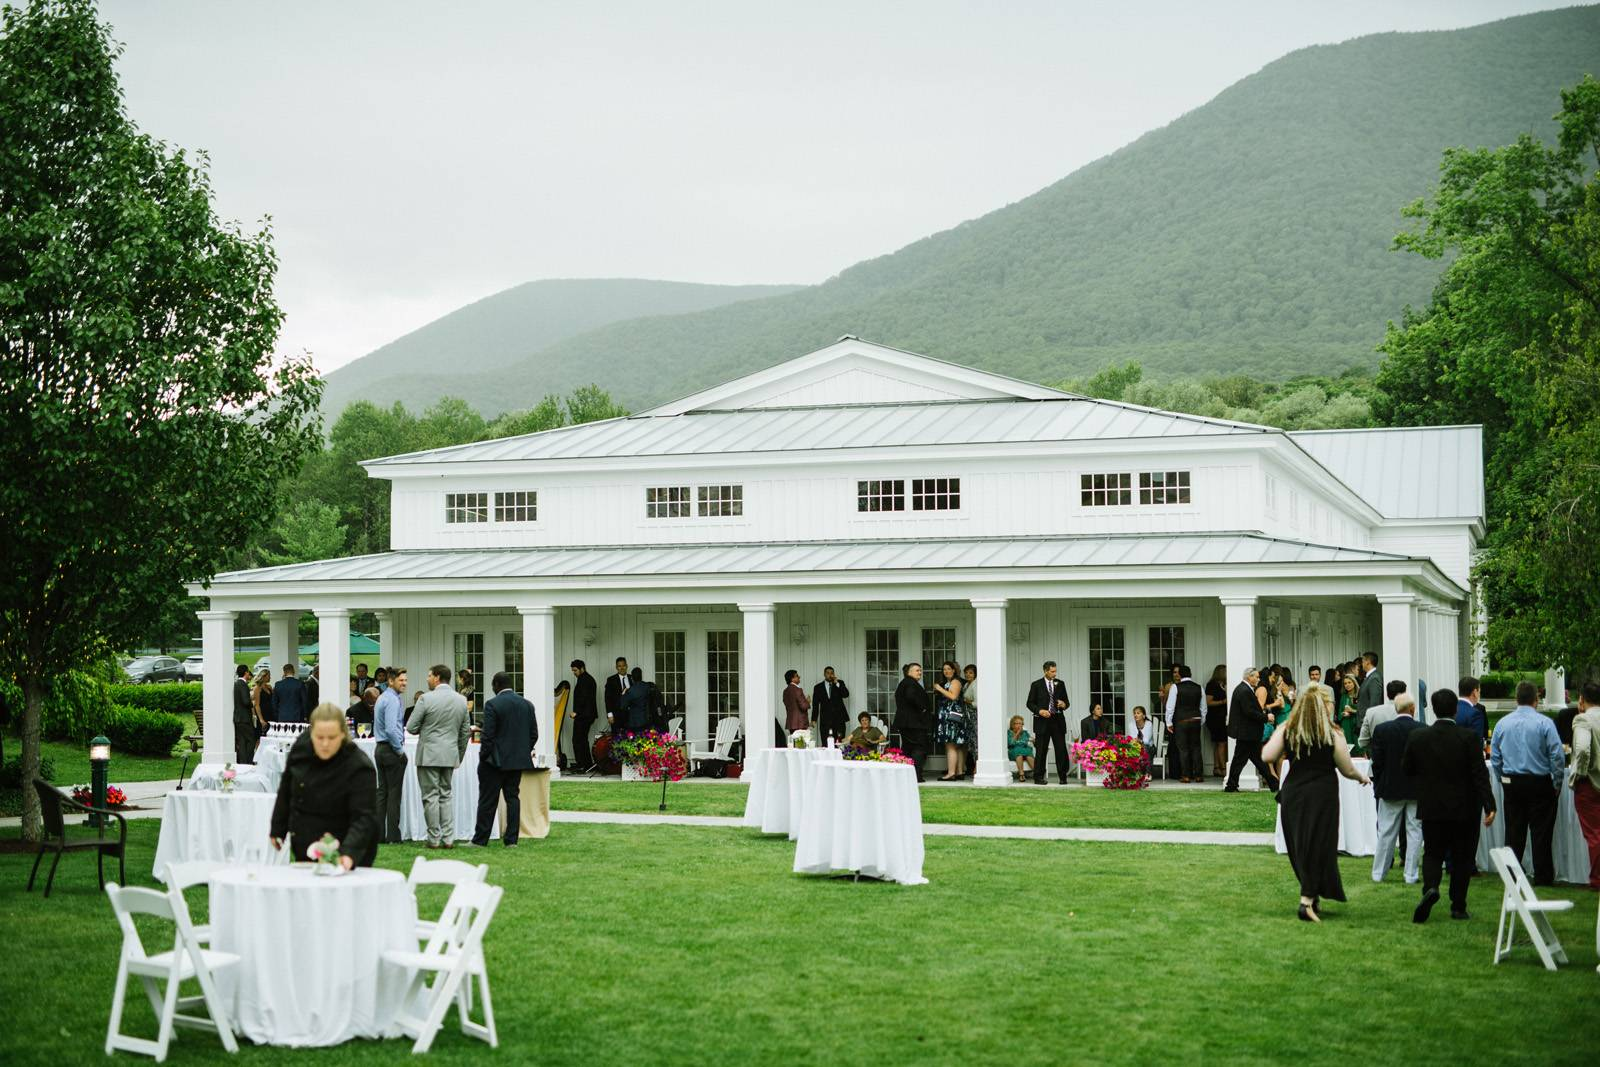 Outdoor cocktail party for summer wedding at The Equinox in Manchester Vermont